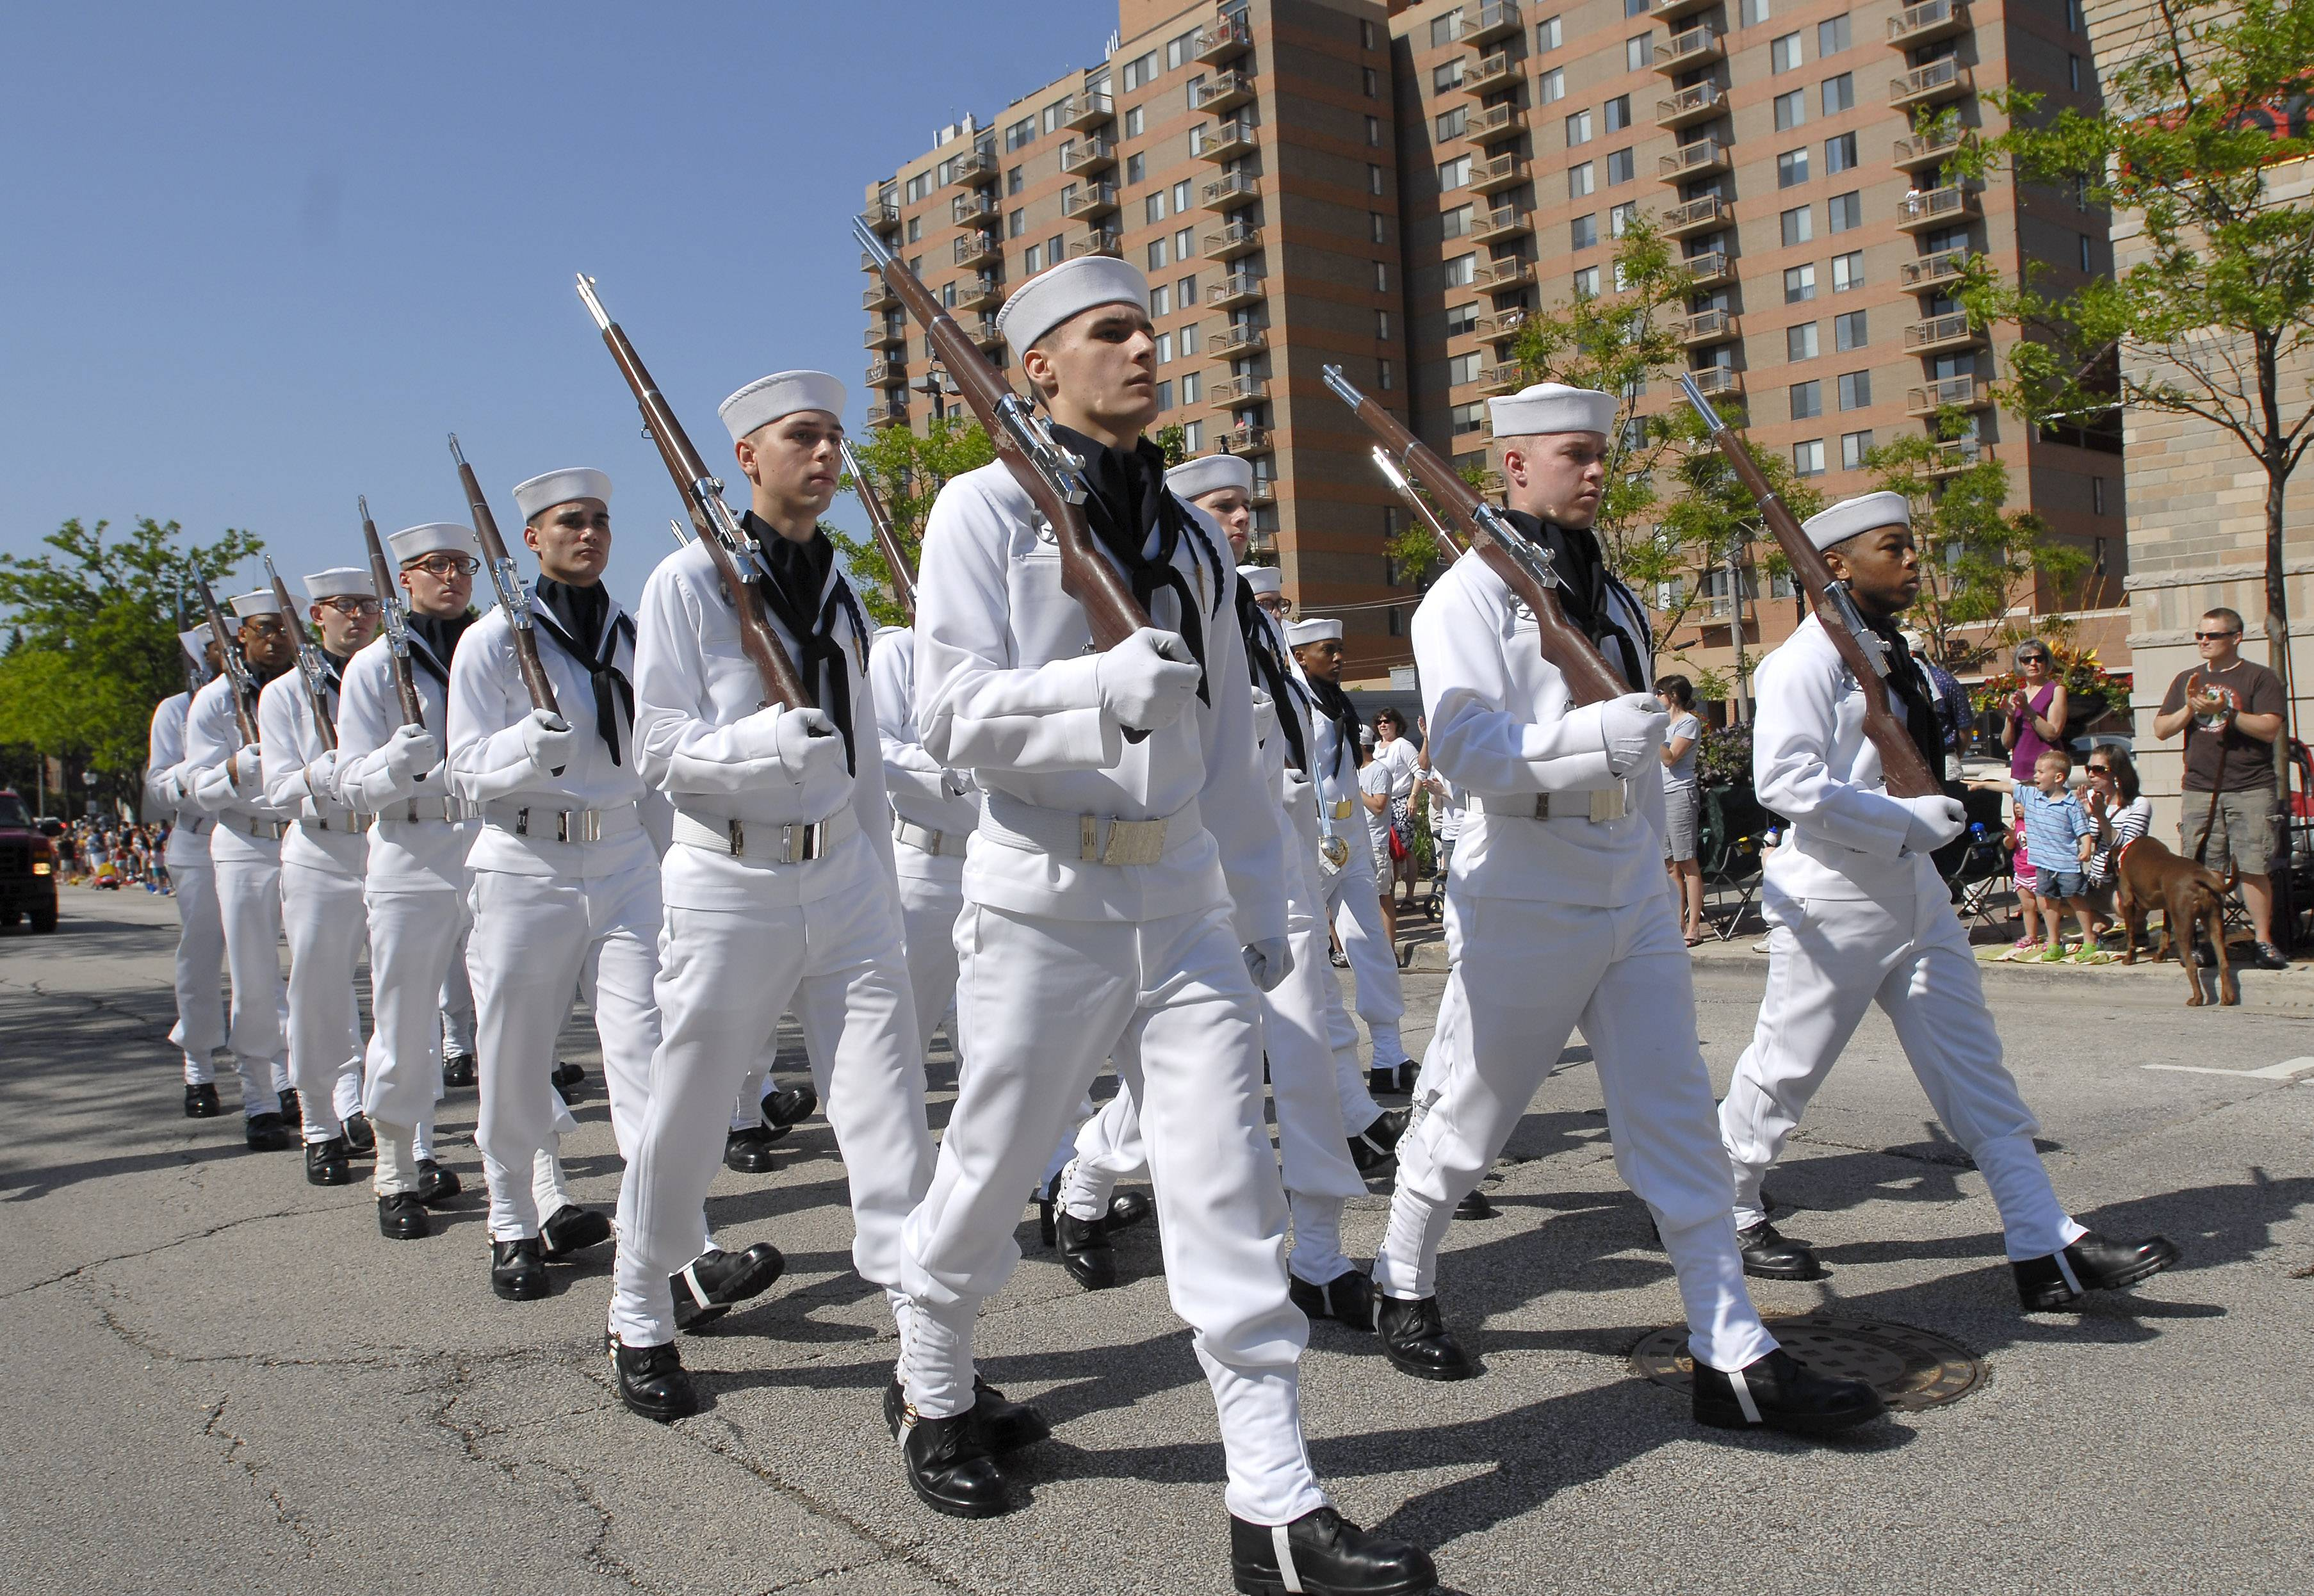 Sailors march in their dress whites at the 2011 Memorial Day parade Monday in Arlington Heights.